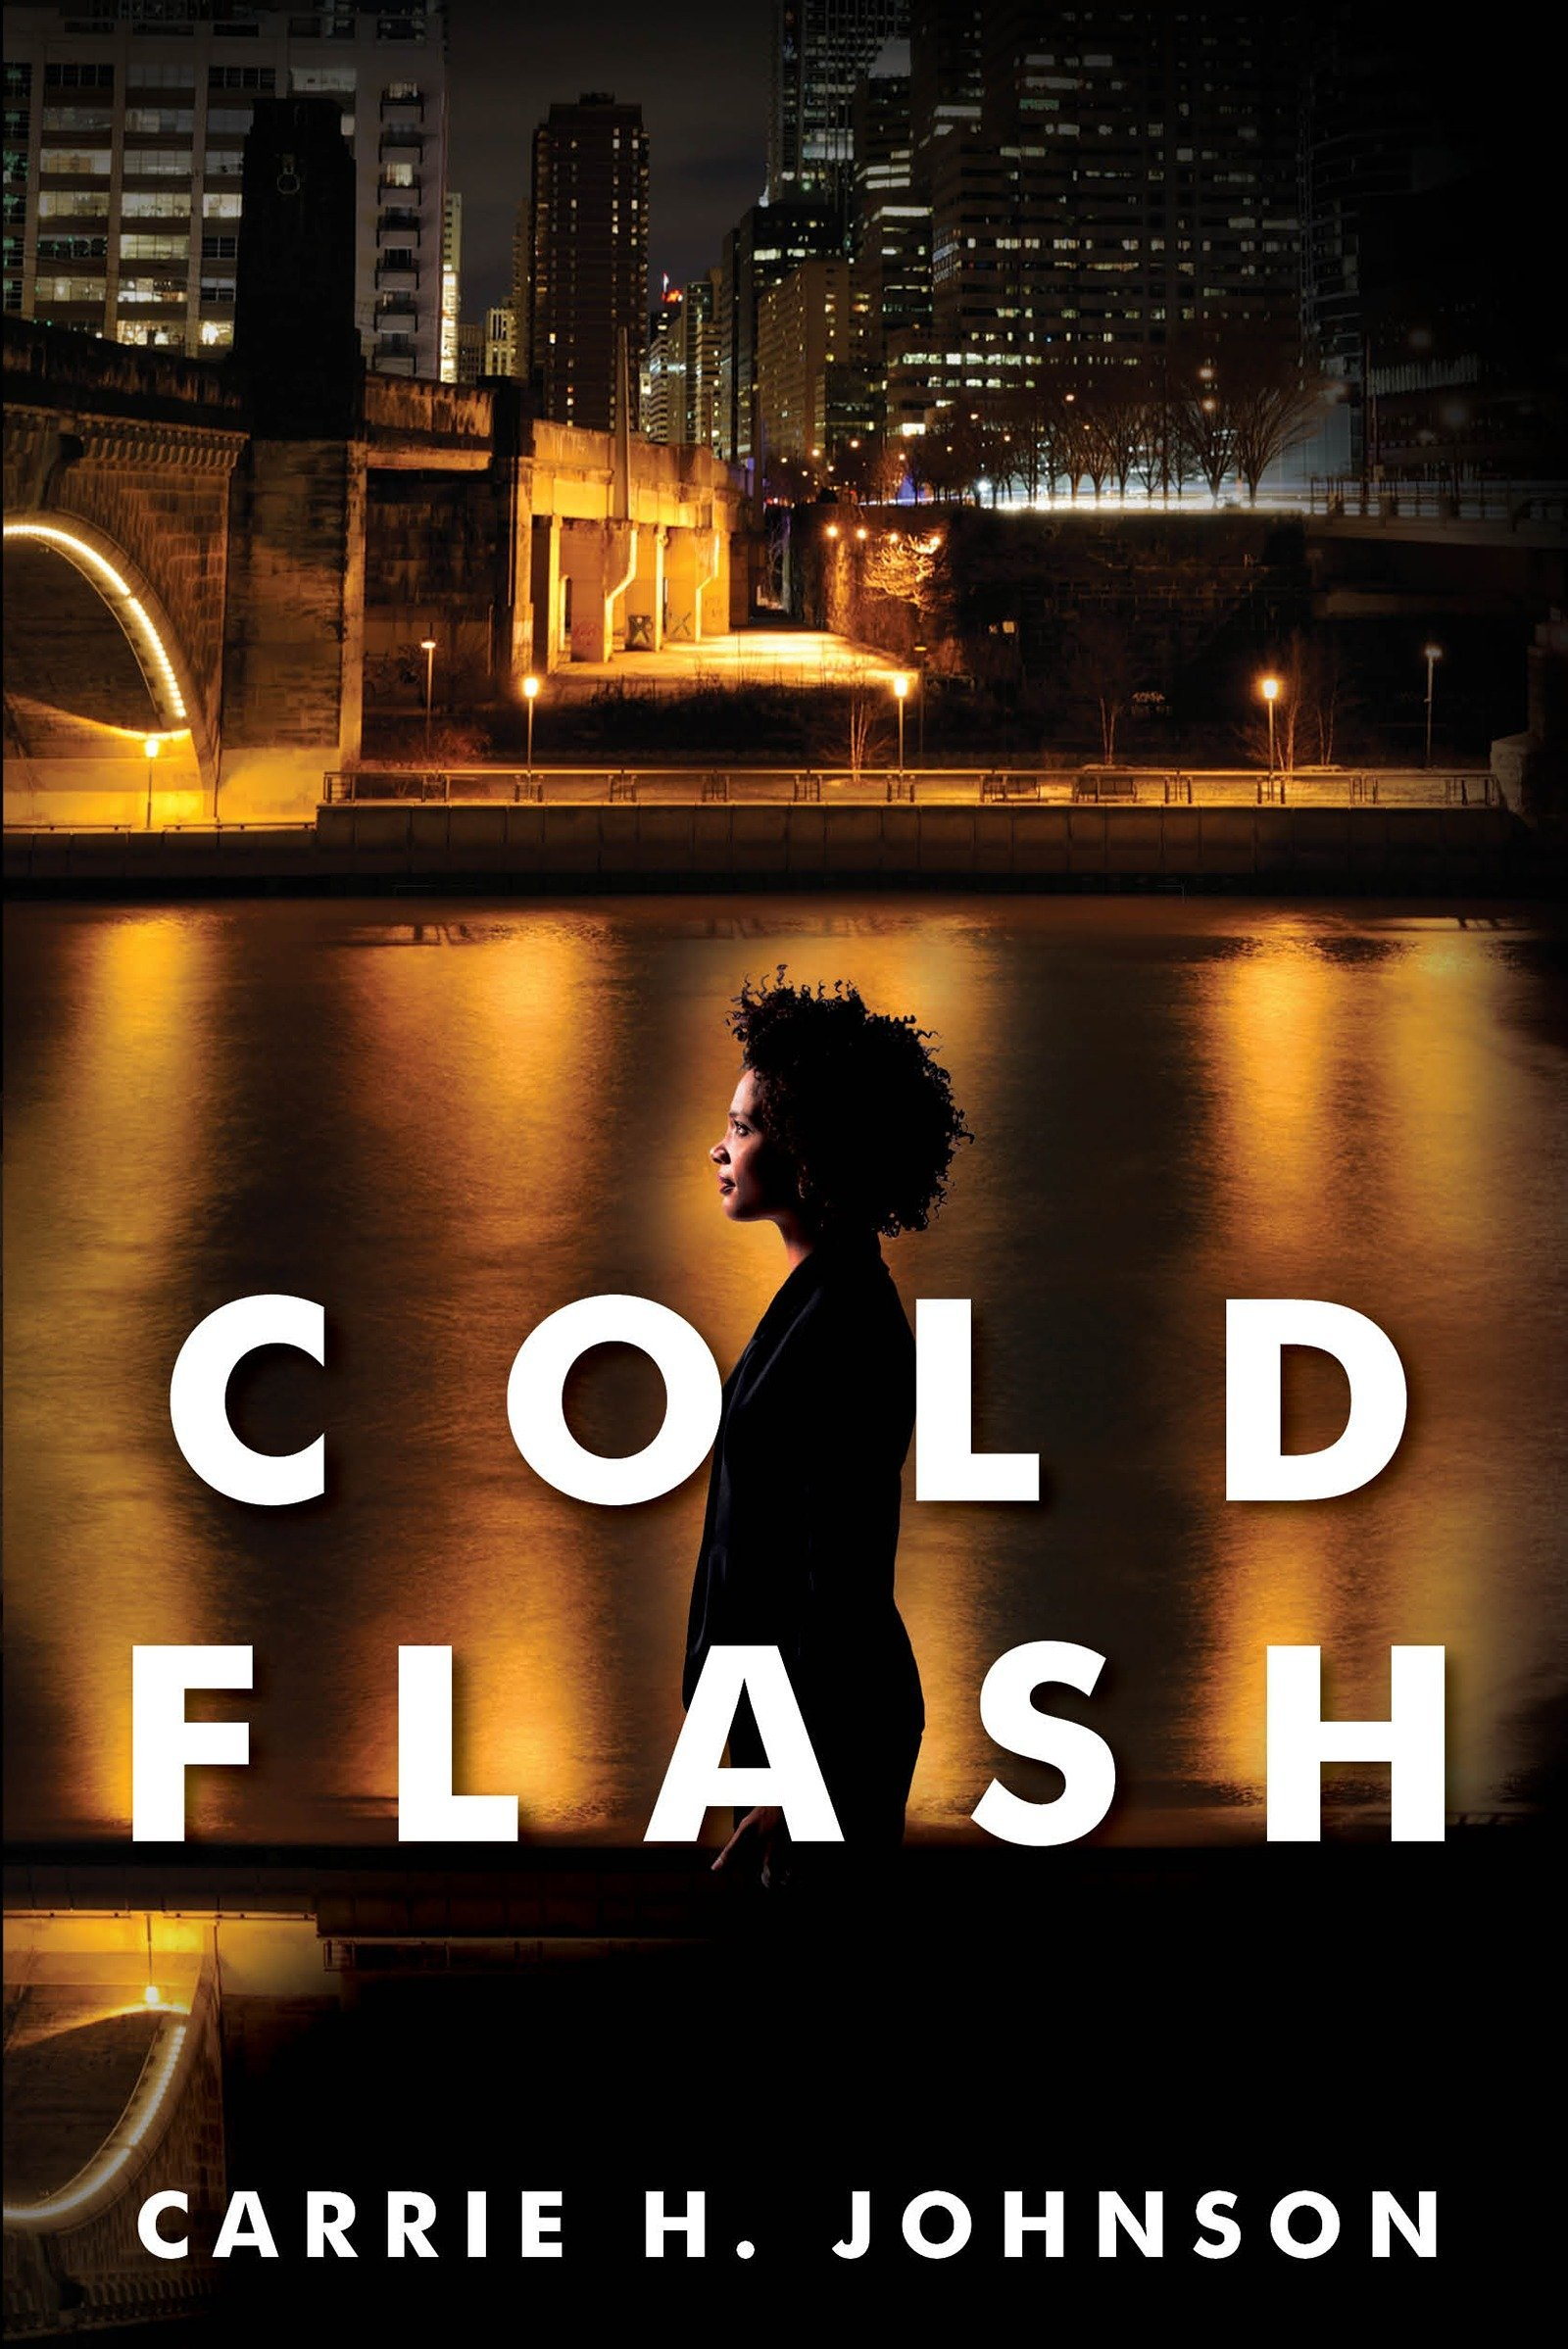 Amazon.com: Cold Flash (The Muriel Mabley Series) (9781496704016 ...